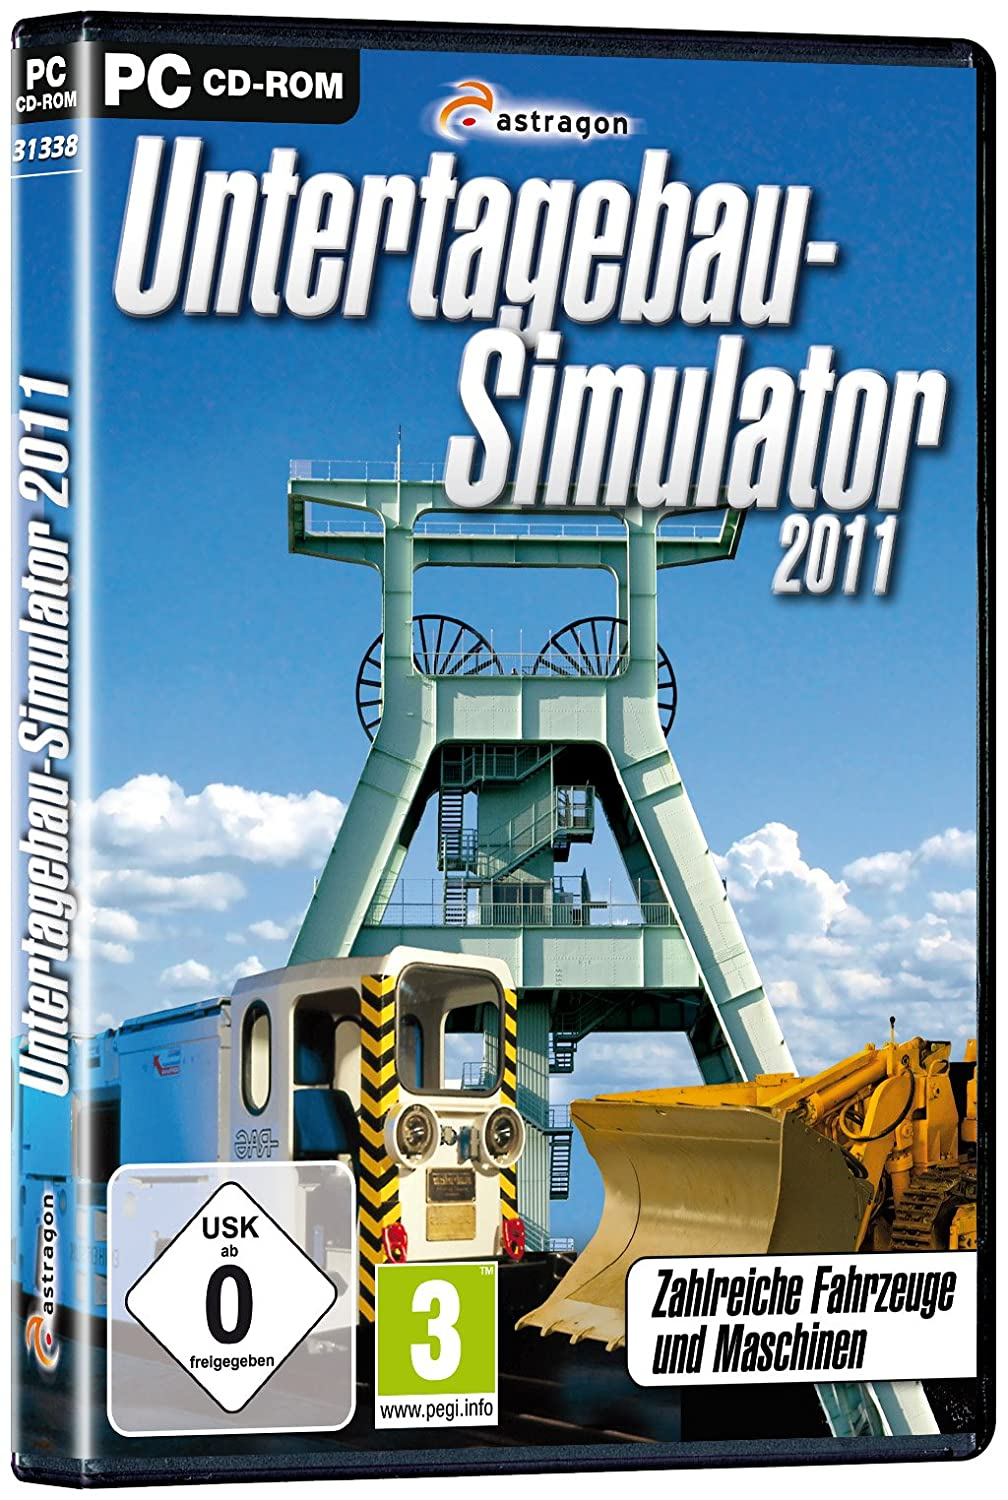 Untertagebau Simulator 2011: PC: Amazon.de: Games